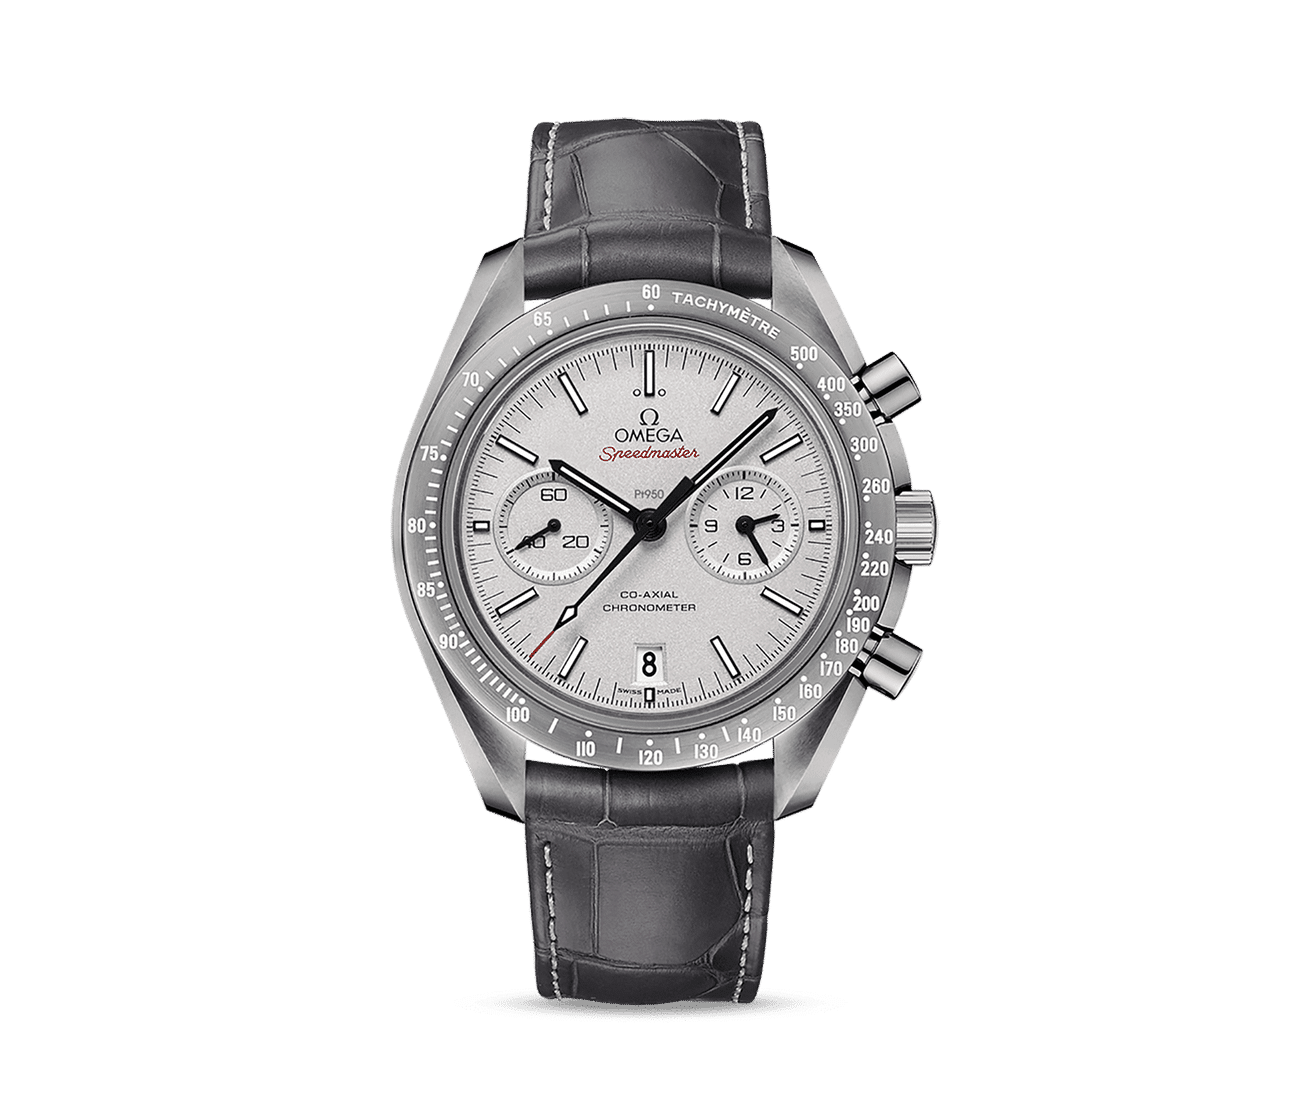 Moonwatch Omega Co-axial Chronograph